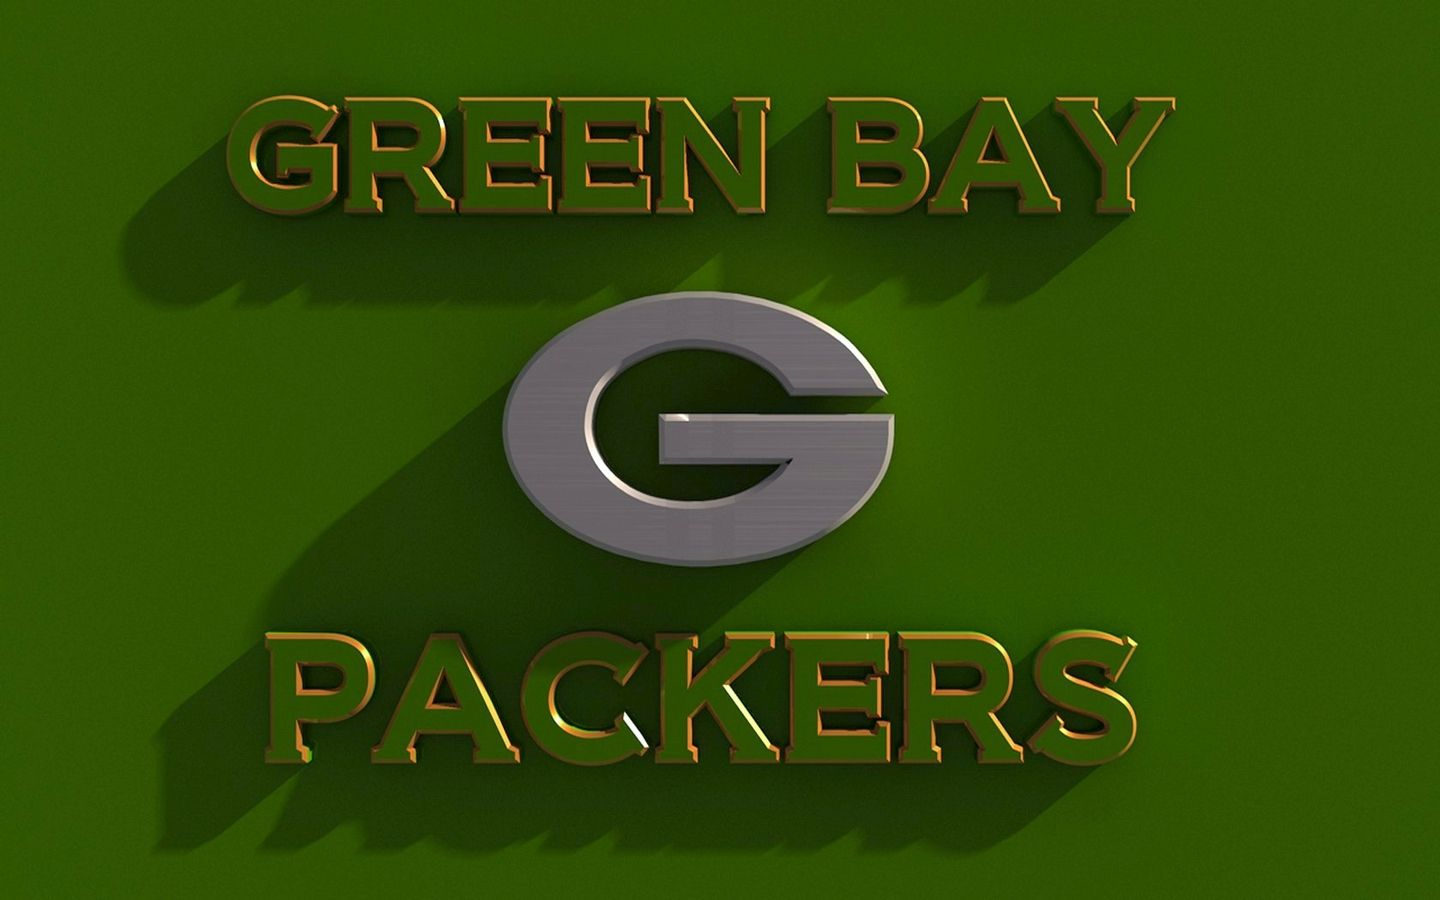 Packer Background For Computer More Free Pc Wallpaper For Your